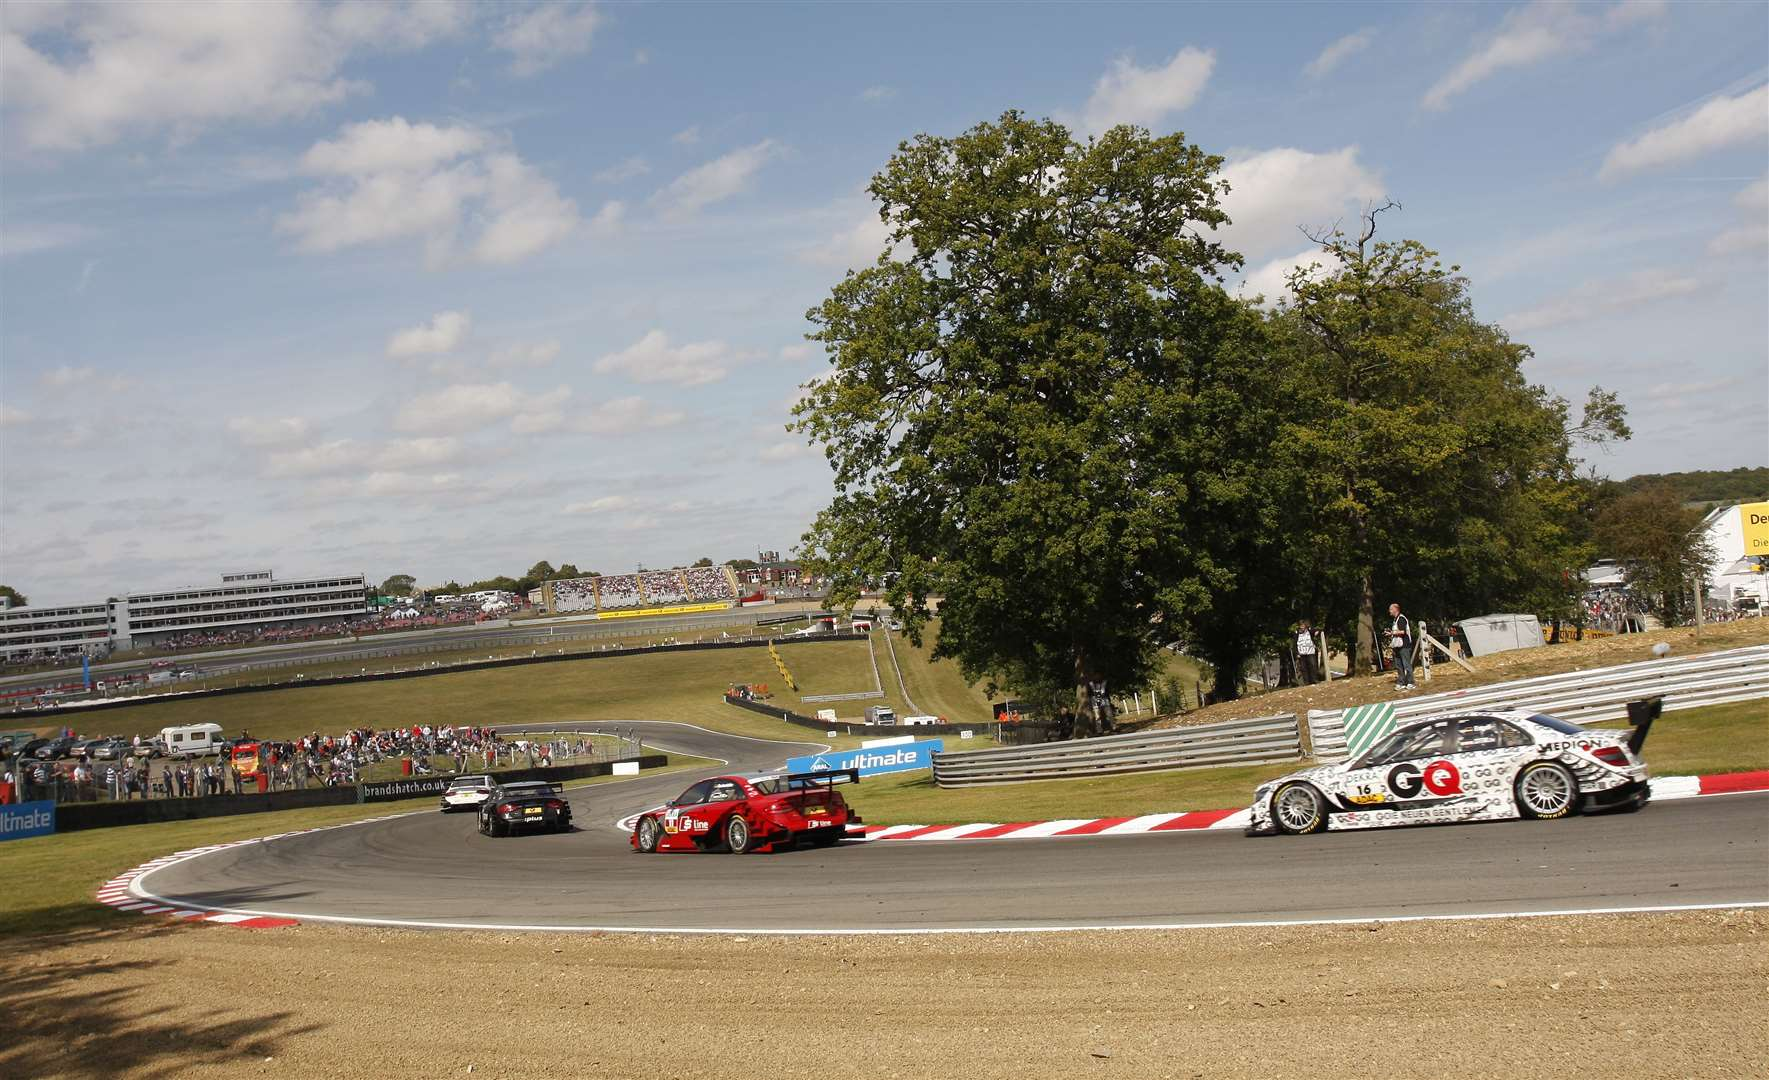 The DTM field exits Druids during the 2009 event at Brands Hatch. Picture: Peter Still